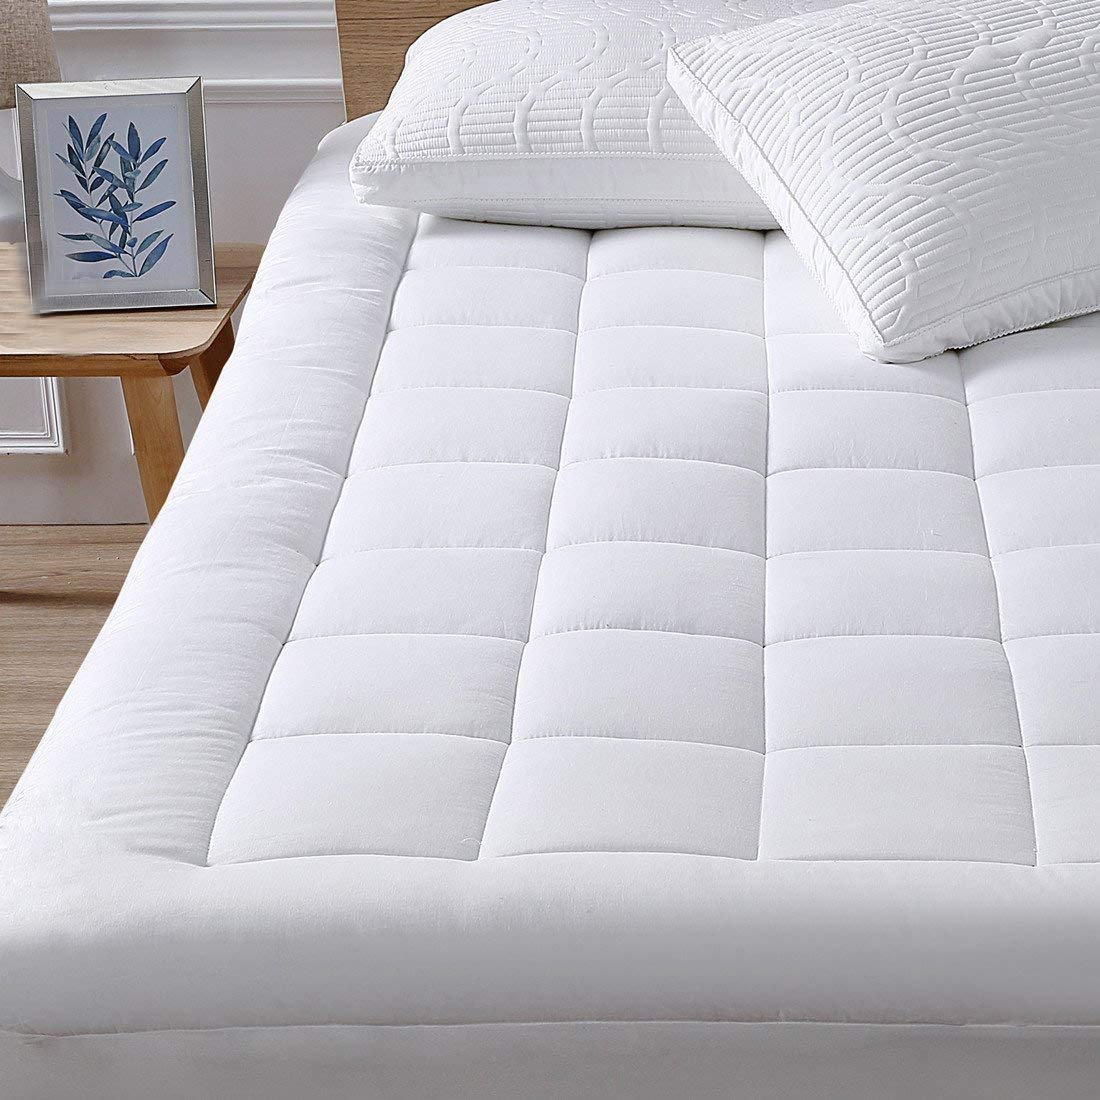 oaskys Mattress Stretches Cooling Alternative